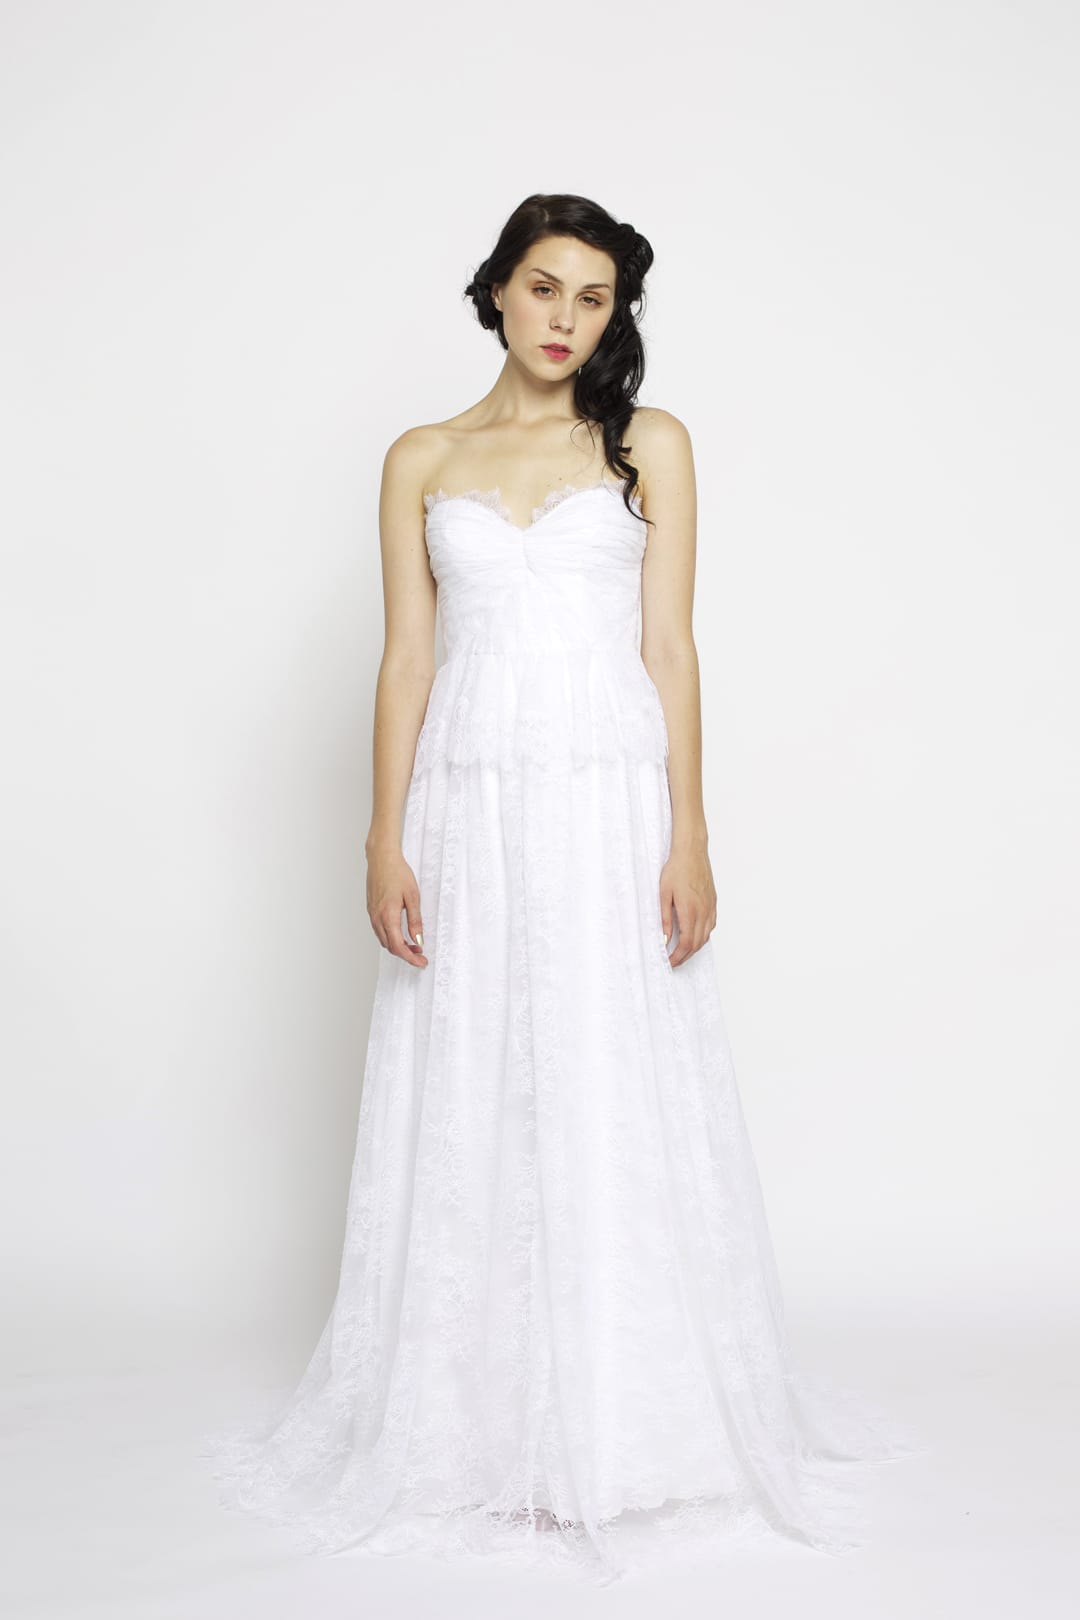 Claire la faye sell my wedding dress online sell my for Sell wedding dress online